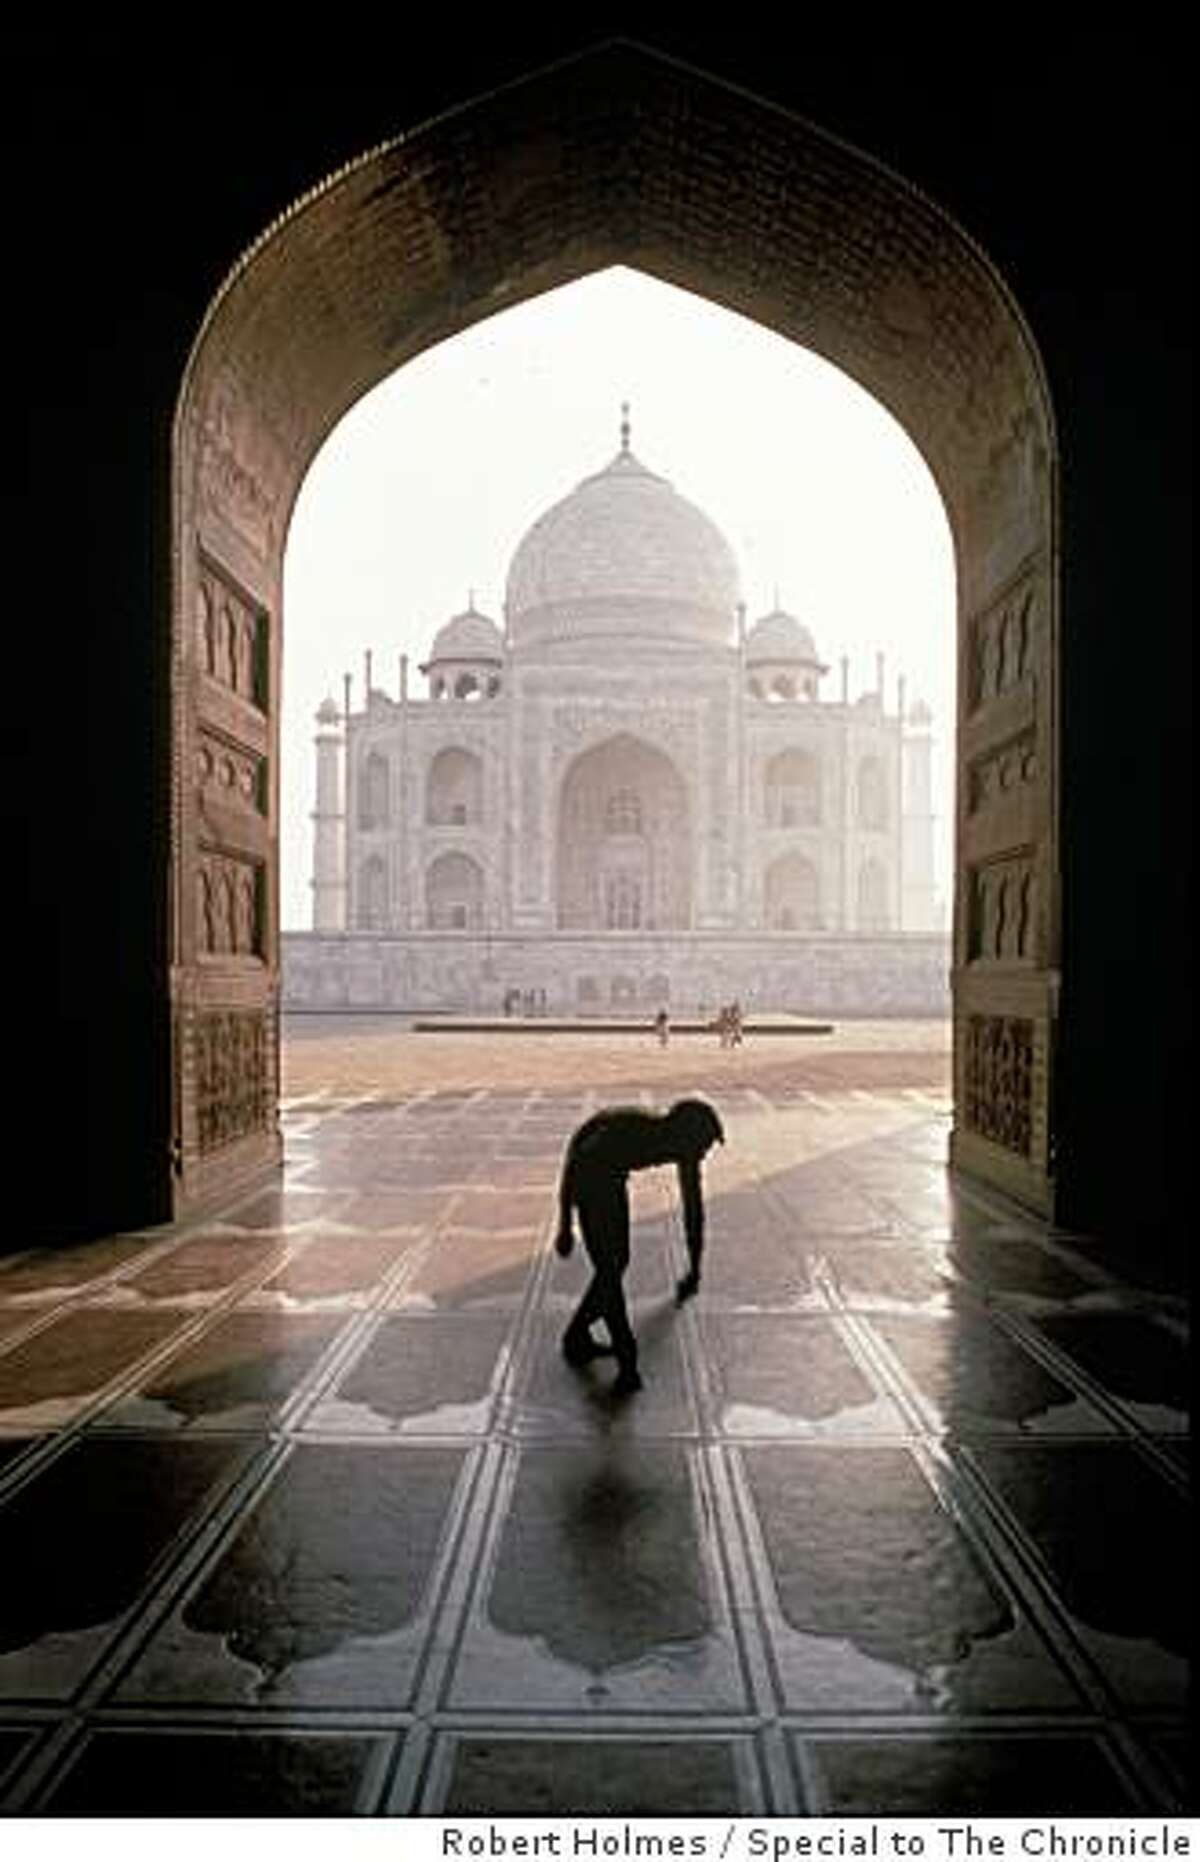 Taj Mahal, Agra. I knew the shot I wanted and had to wait until I had the right configuration of people. I saw this sweeper moving towards me and I knew this was the shot.